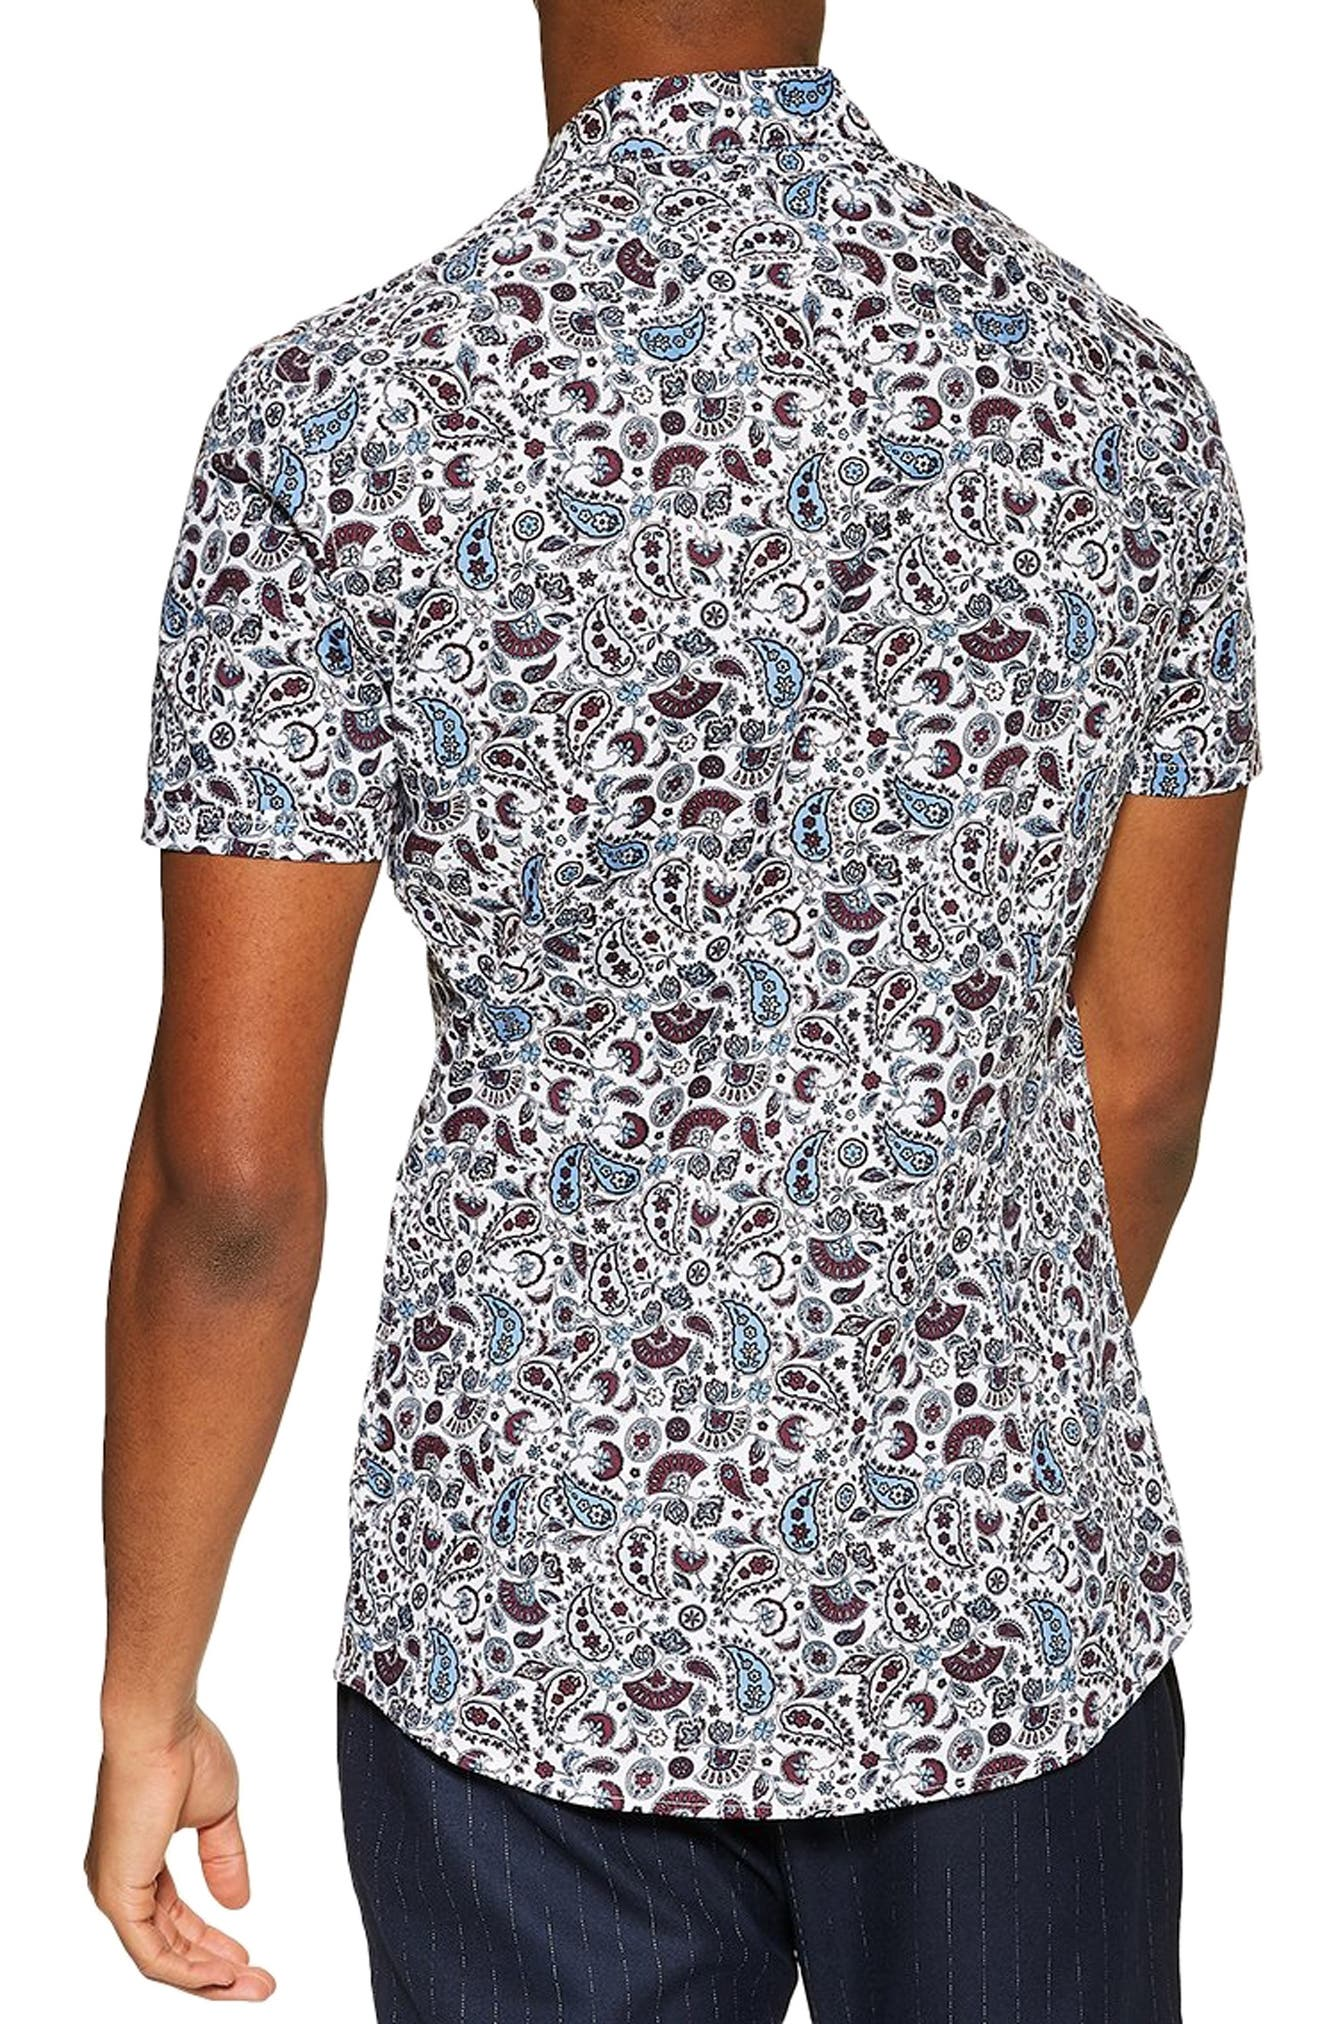 TOPMAN, Paisley Print Slim Fit Shirt, Alternate thumbnail 3, color, BLUE MULTI